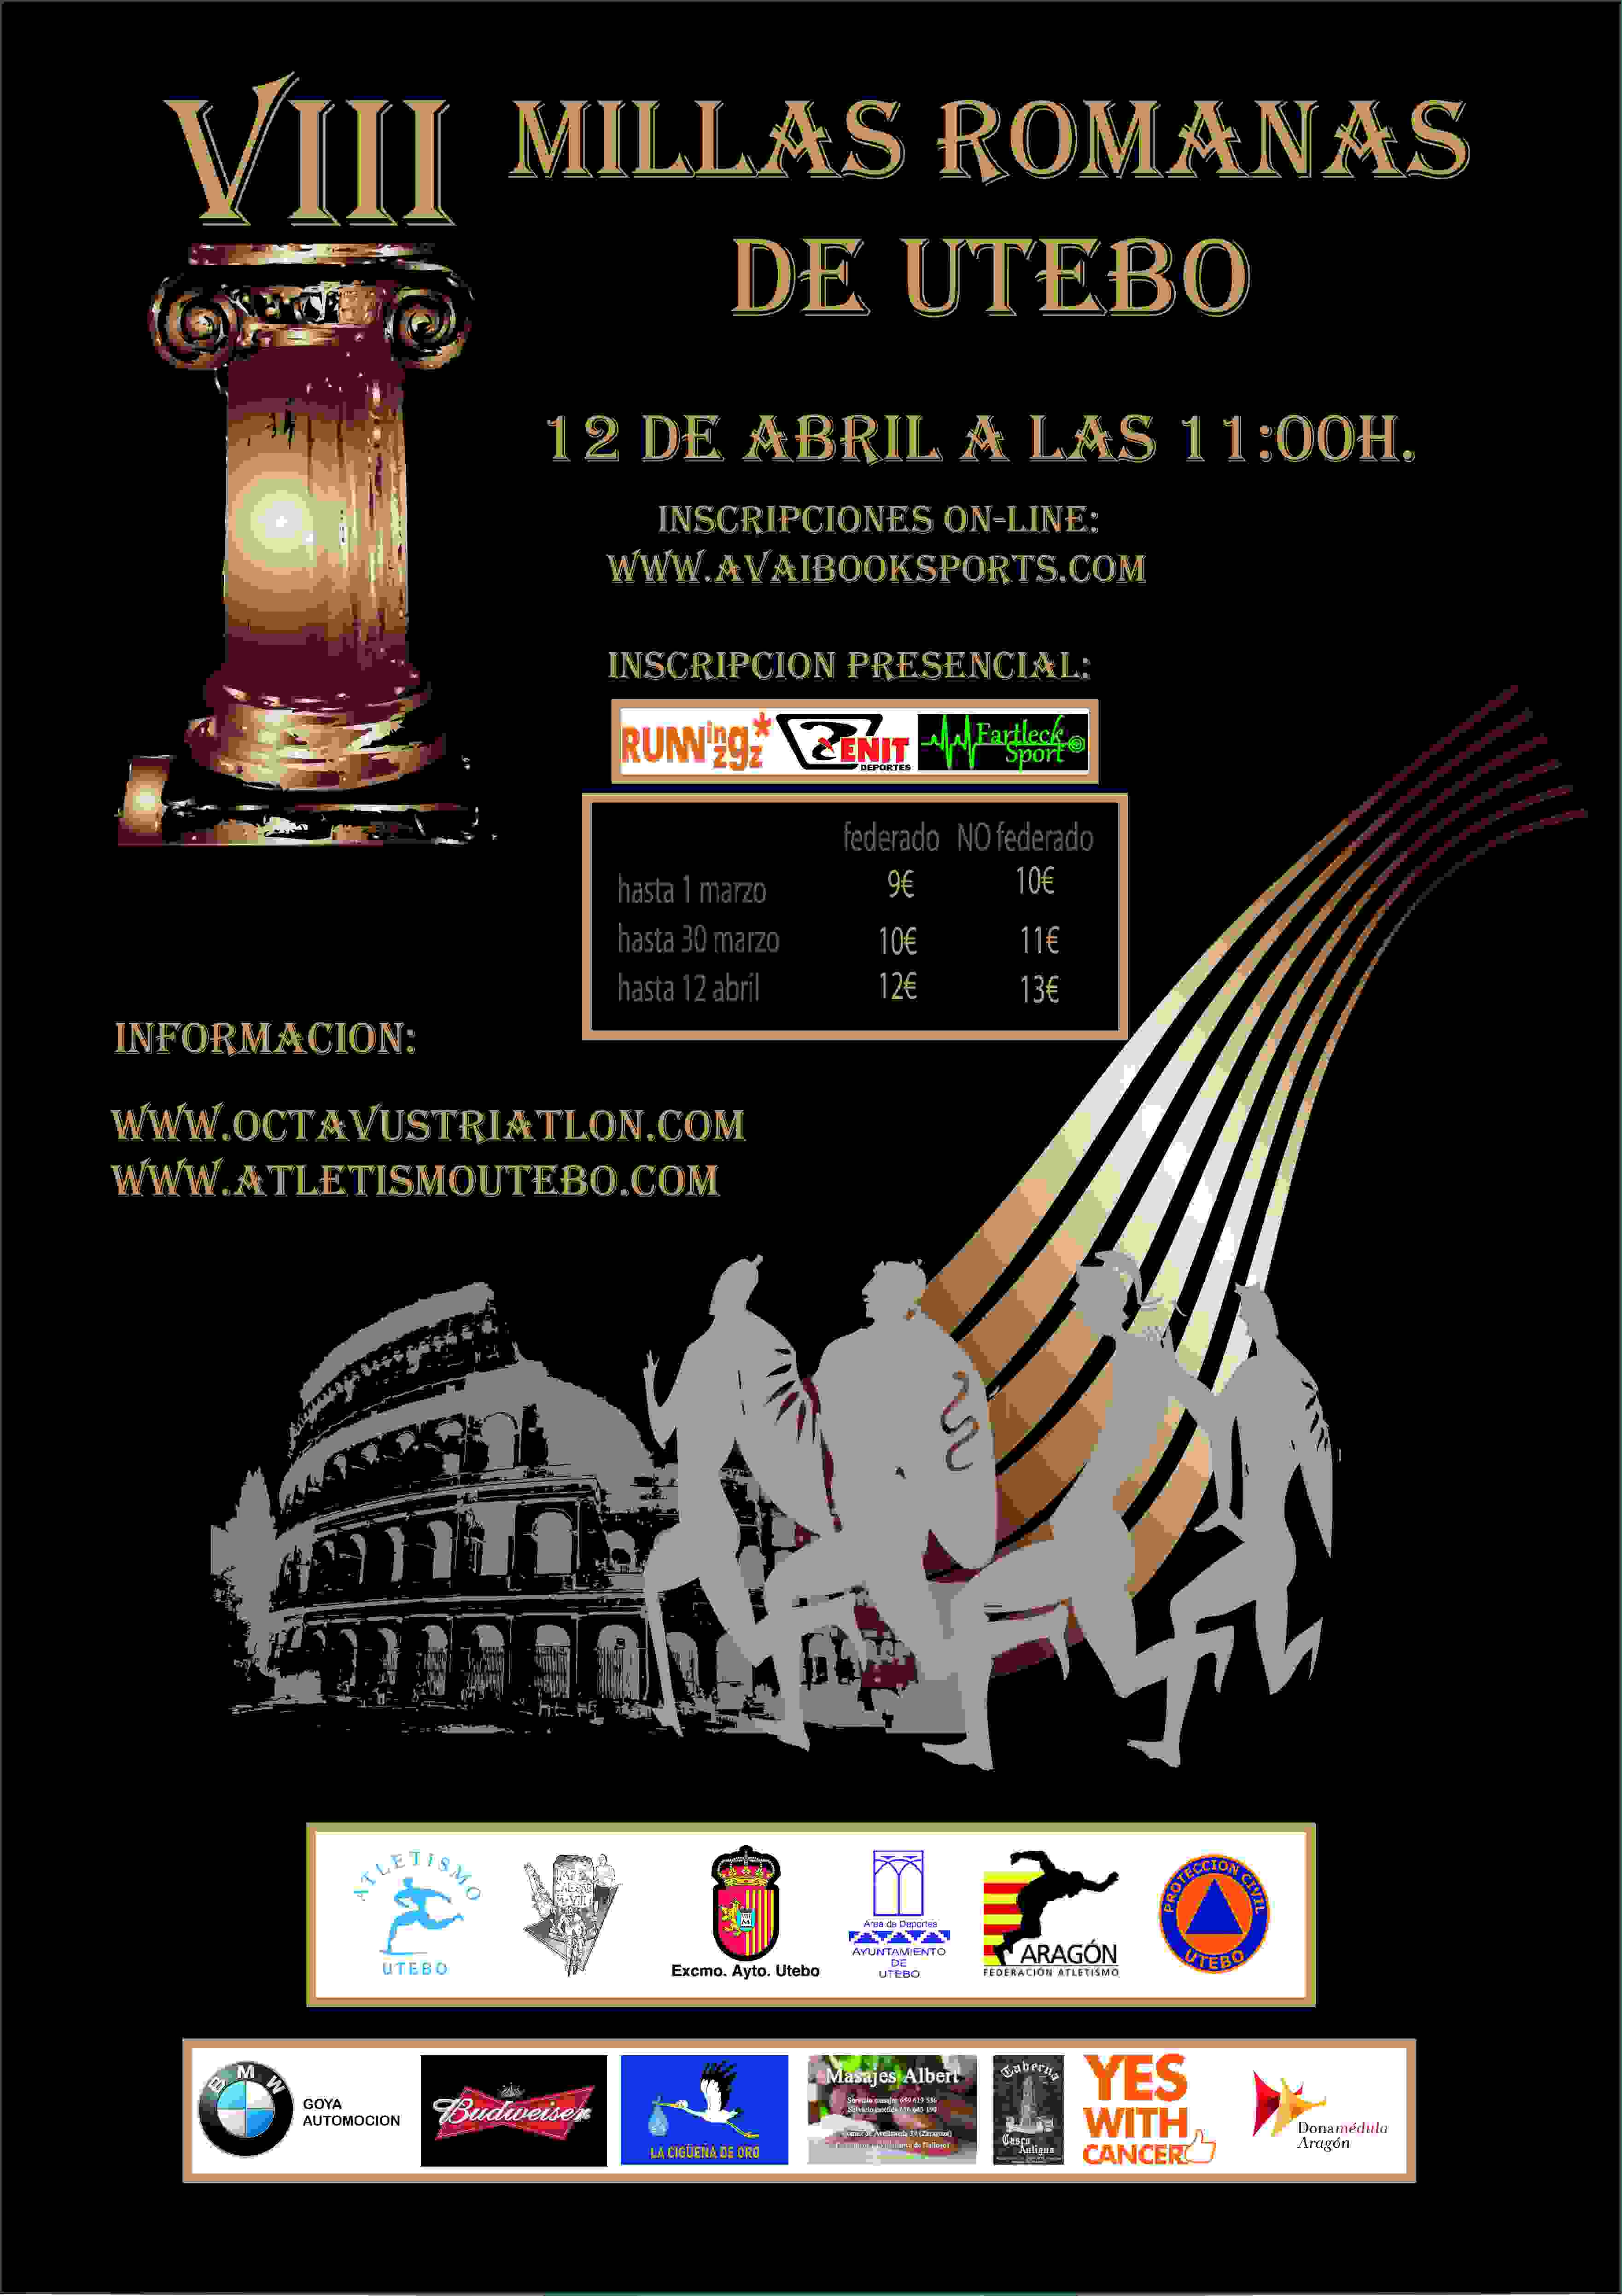 VIII MILLAS DE UTEBO - Register